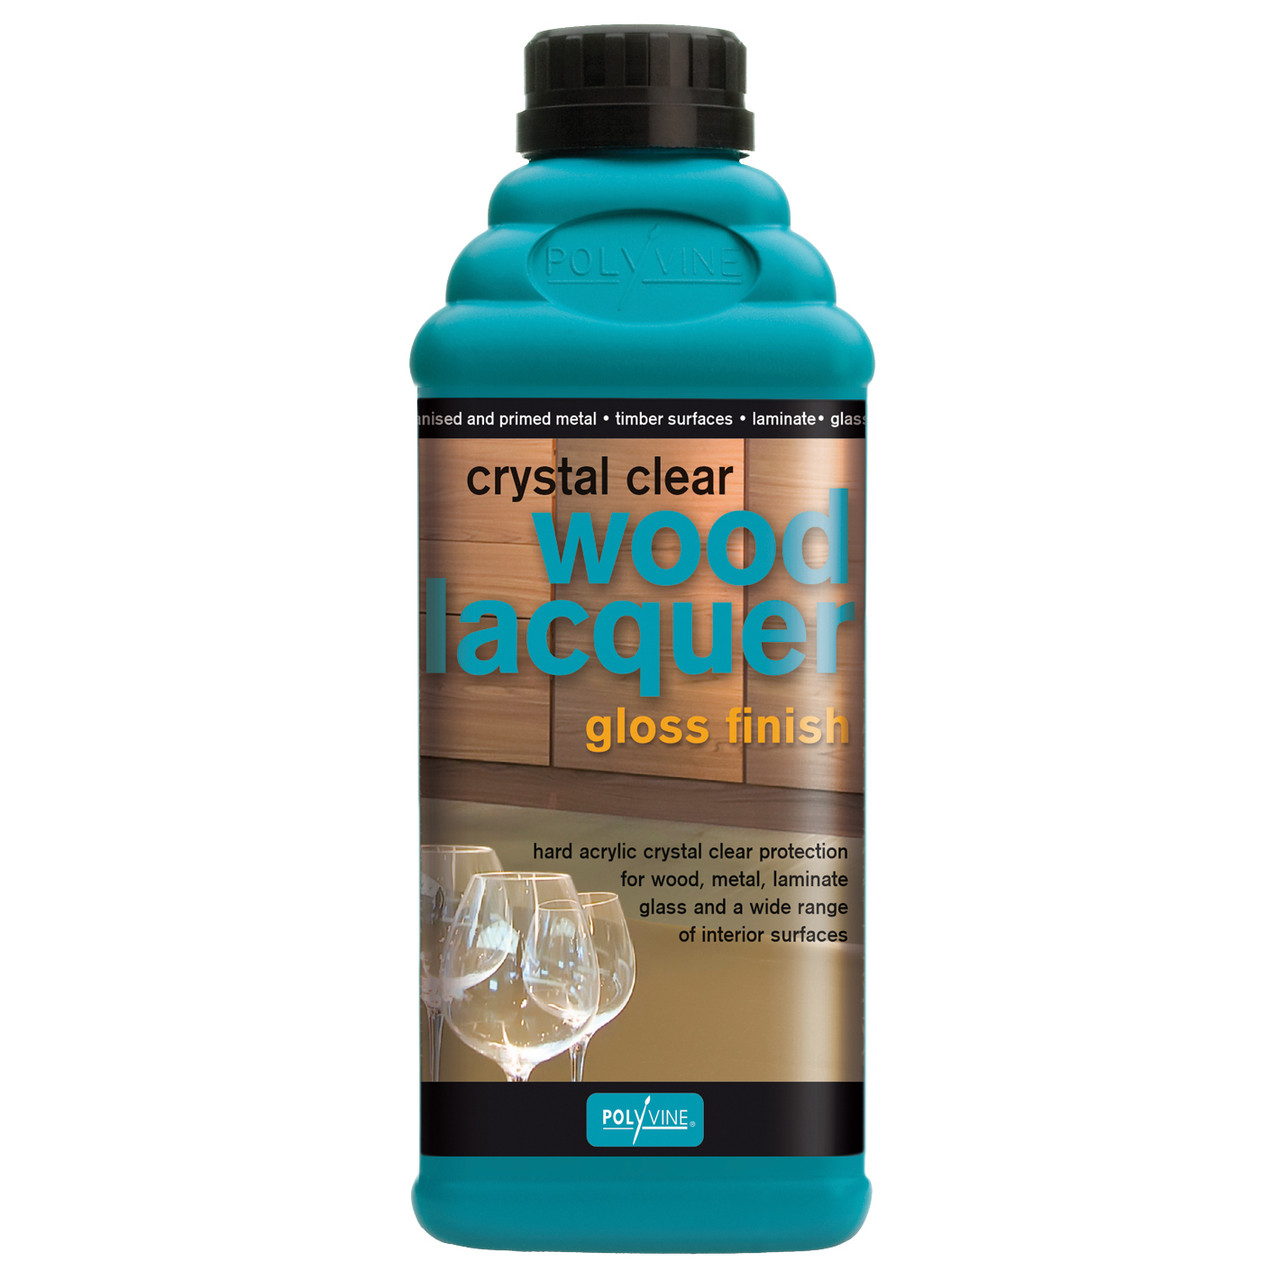 Polyvine Crystal Clear Lacquer - Gloss Finish